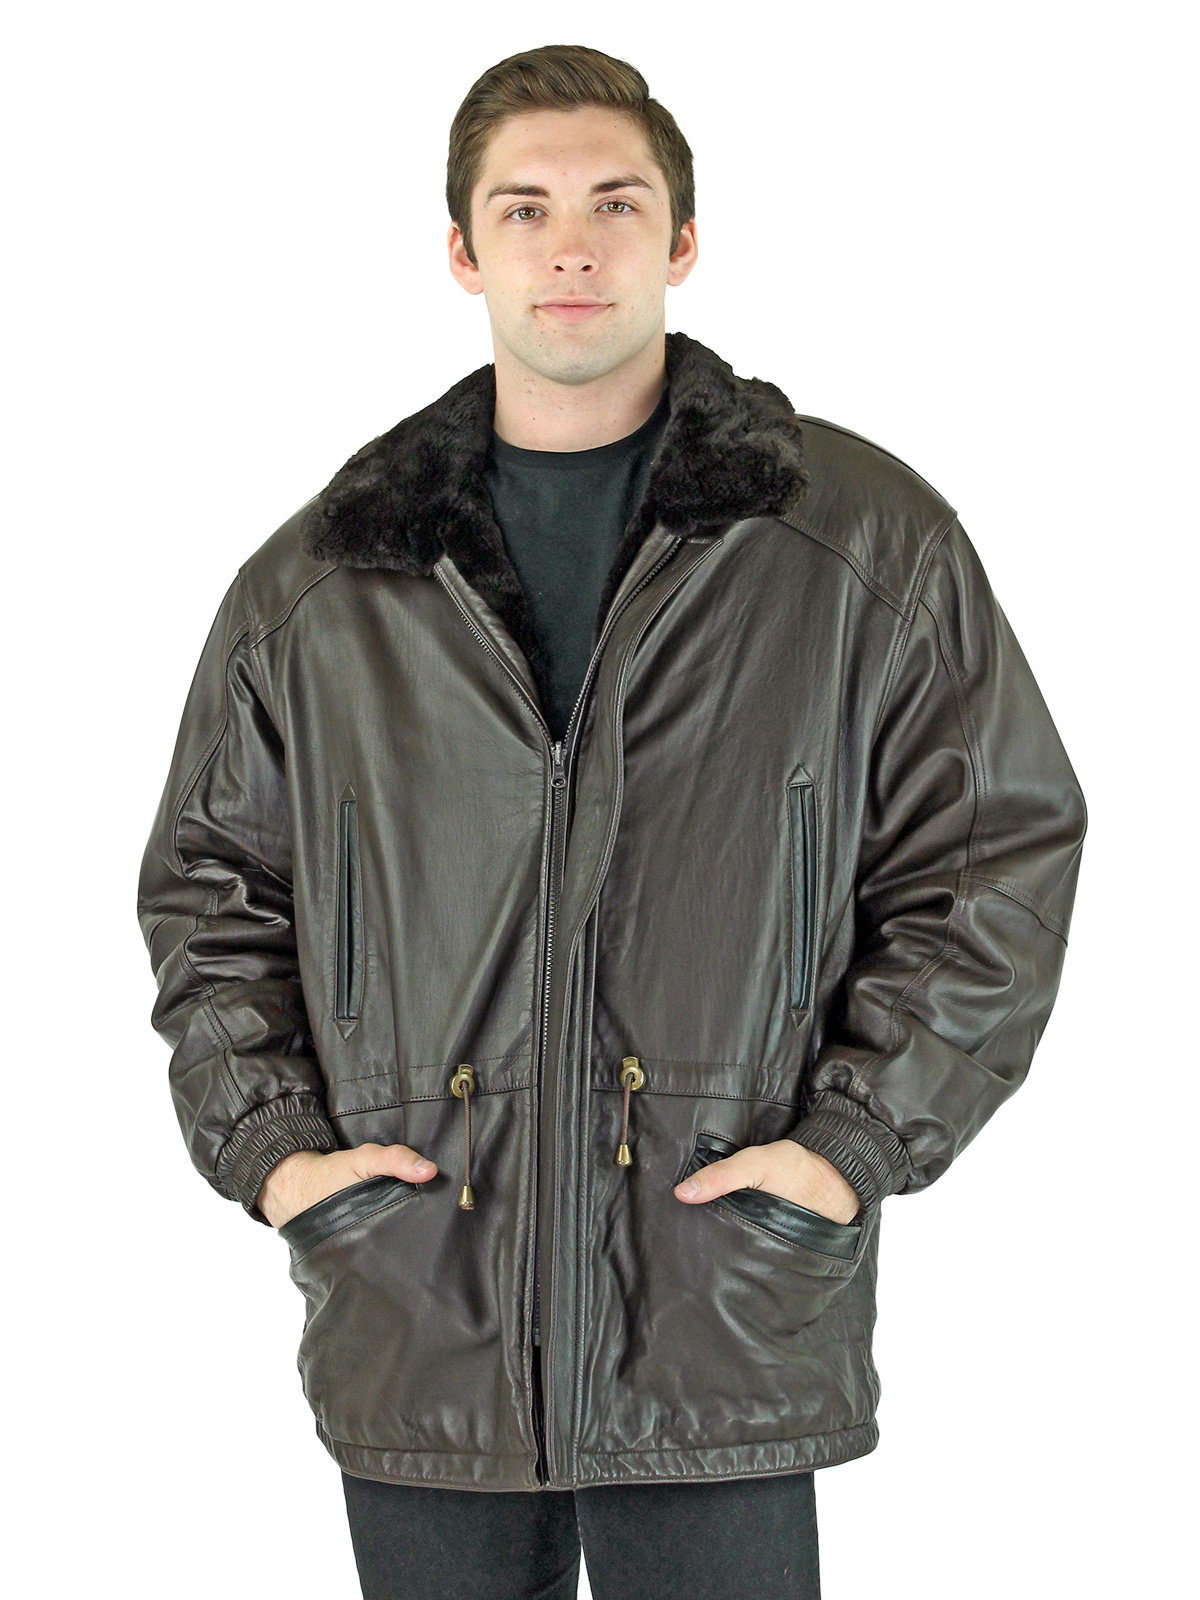 Man's Brown Sheared Beaver Fur Jacket Reversible to Brown Leather